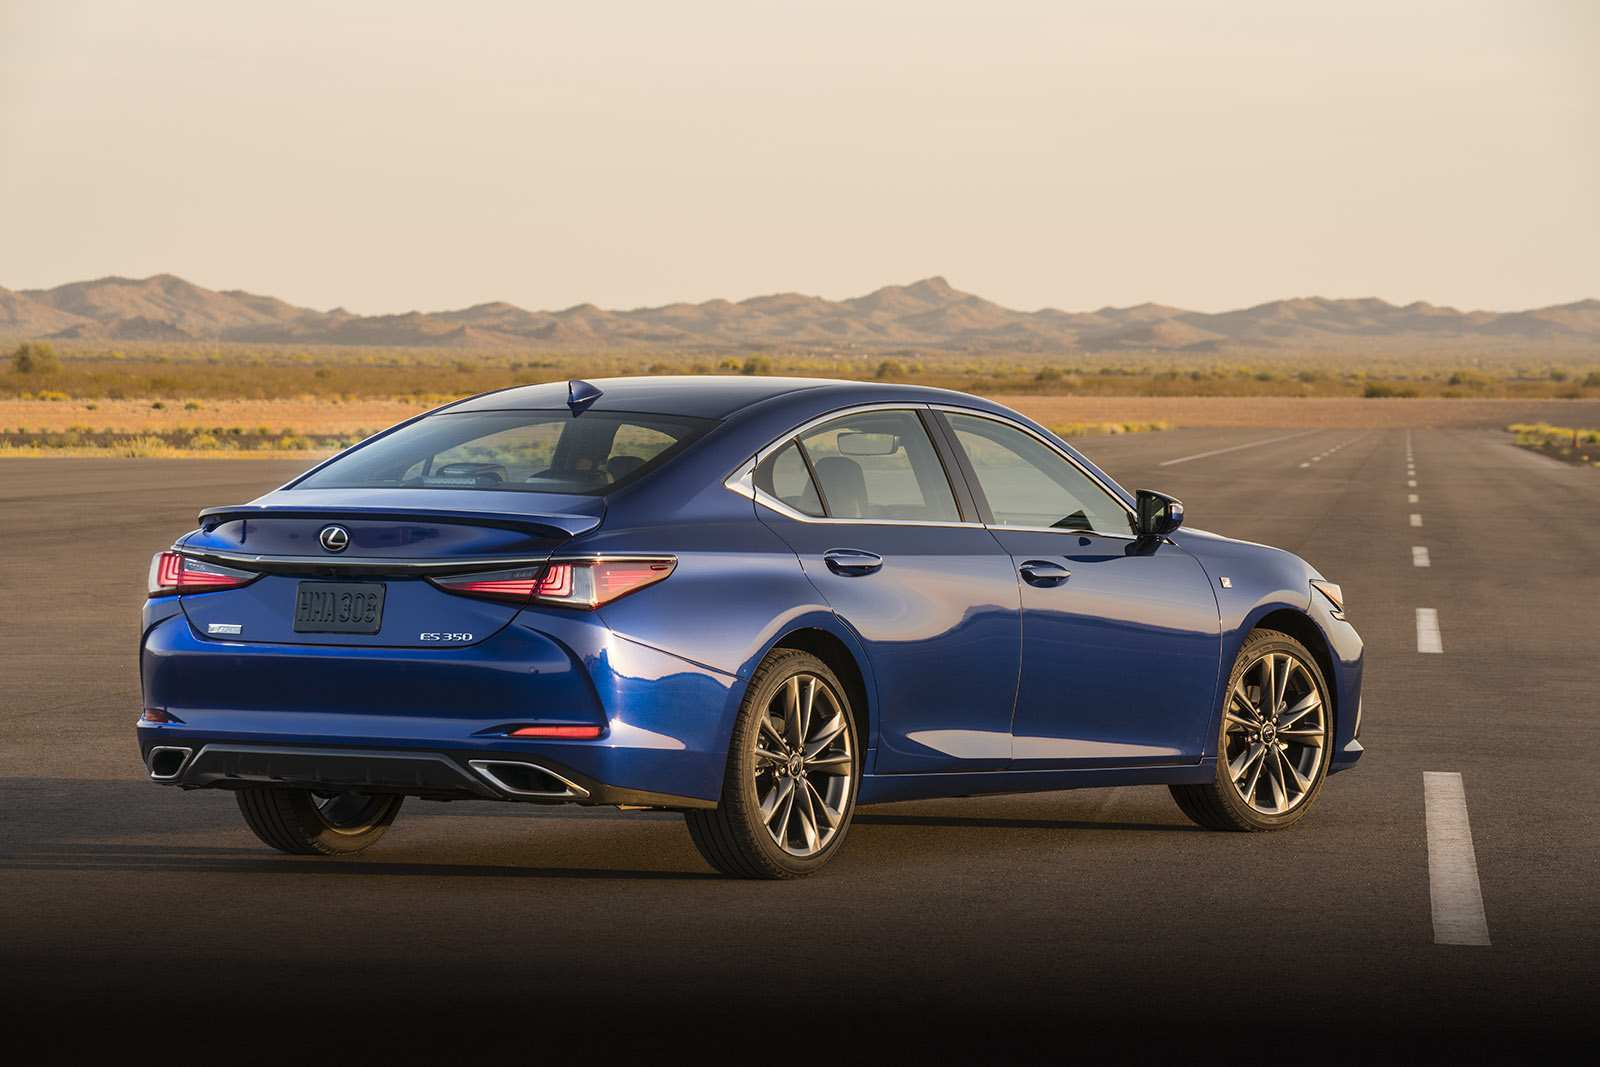 60 The Best Lexus Es 2019 Vs 2018 Review